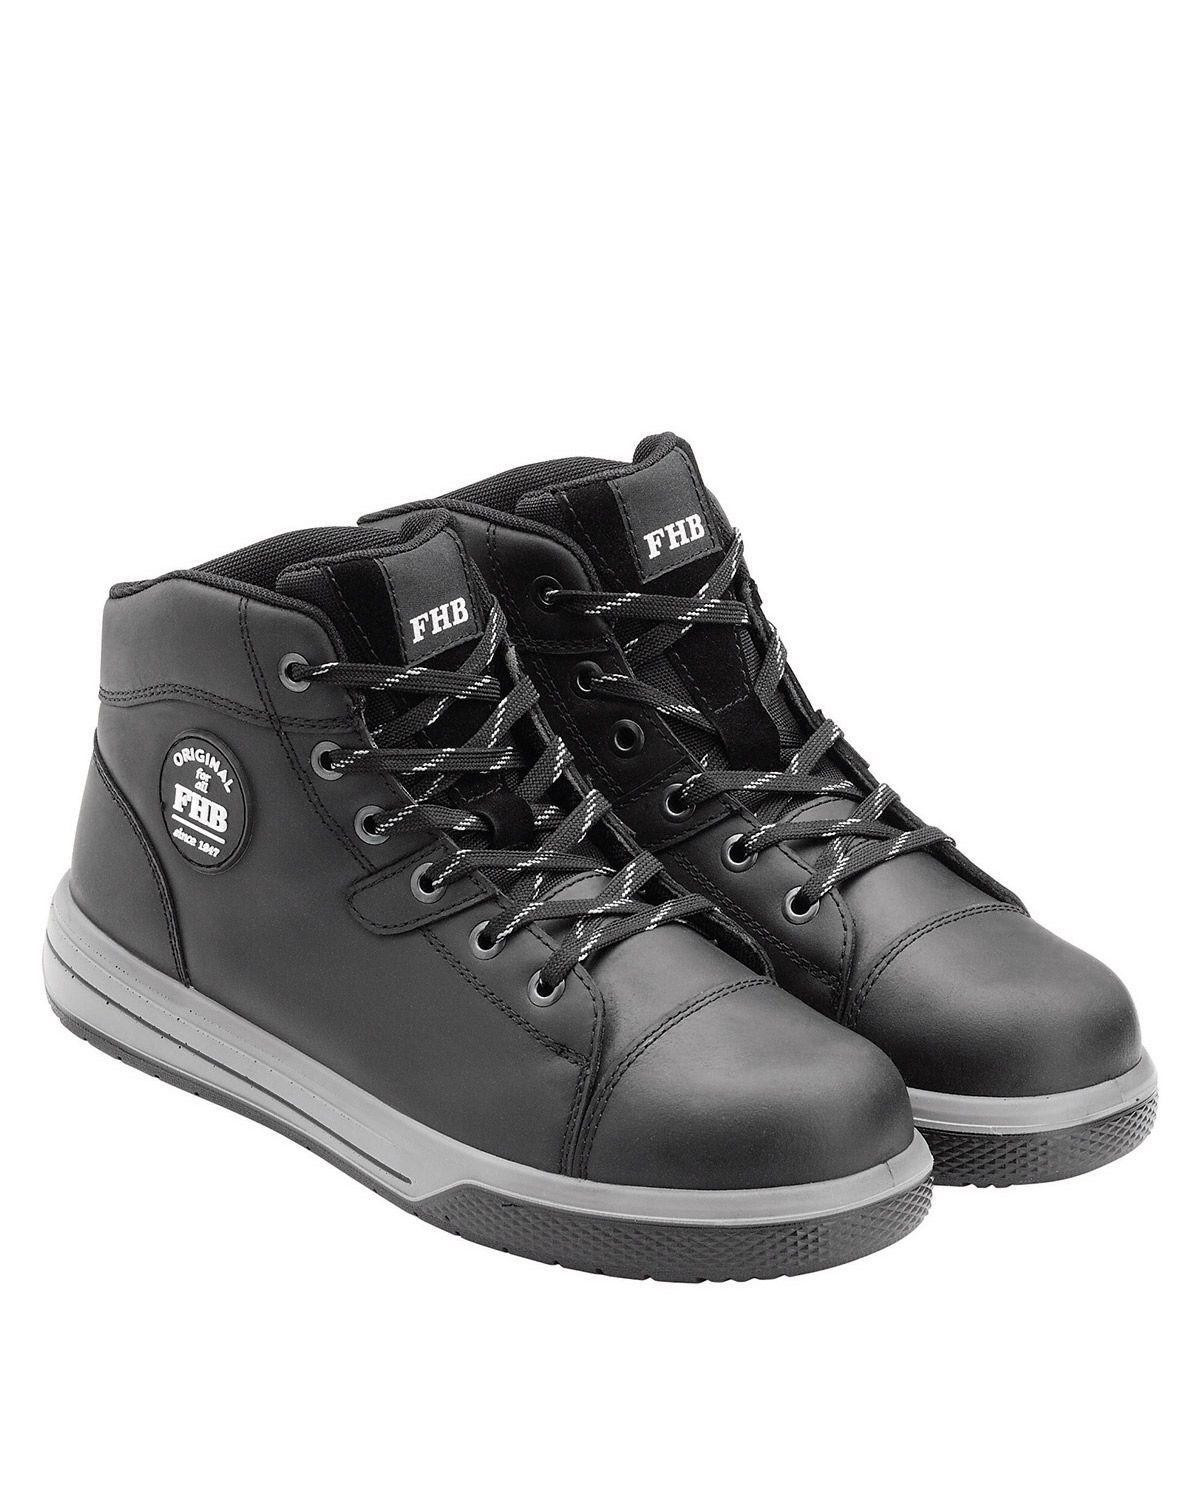 Image of   FHB High Top Sikkerhedssko - Linus (Sort, 41 EU / 7 UK)